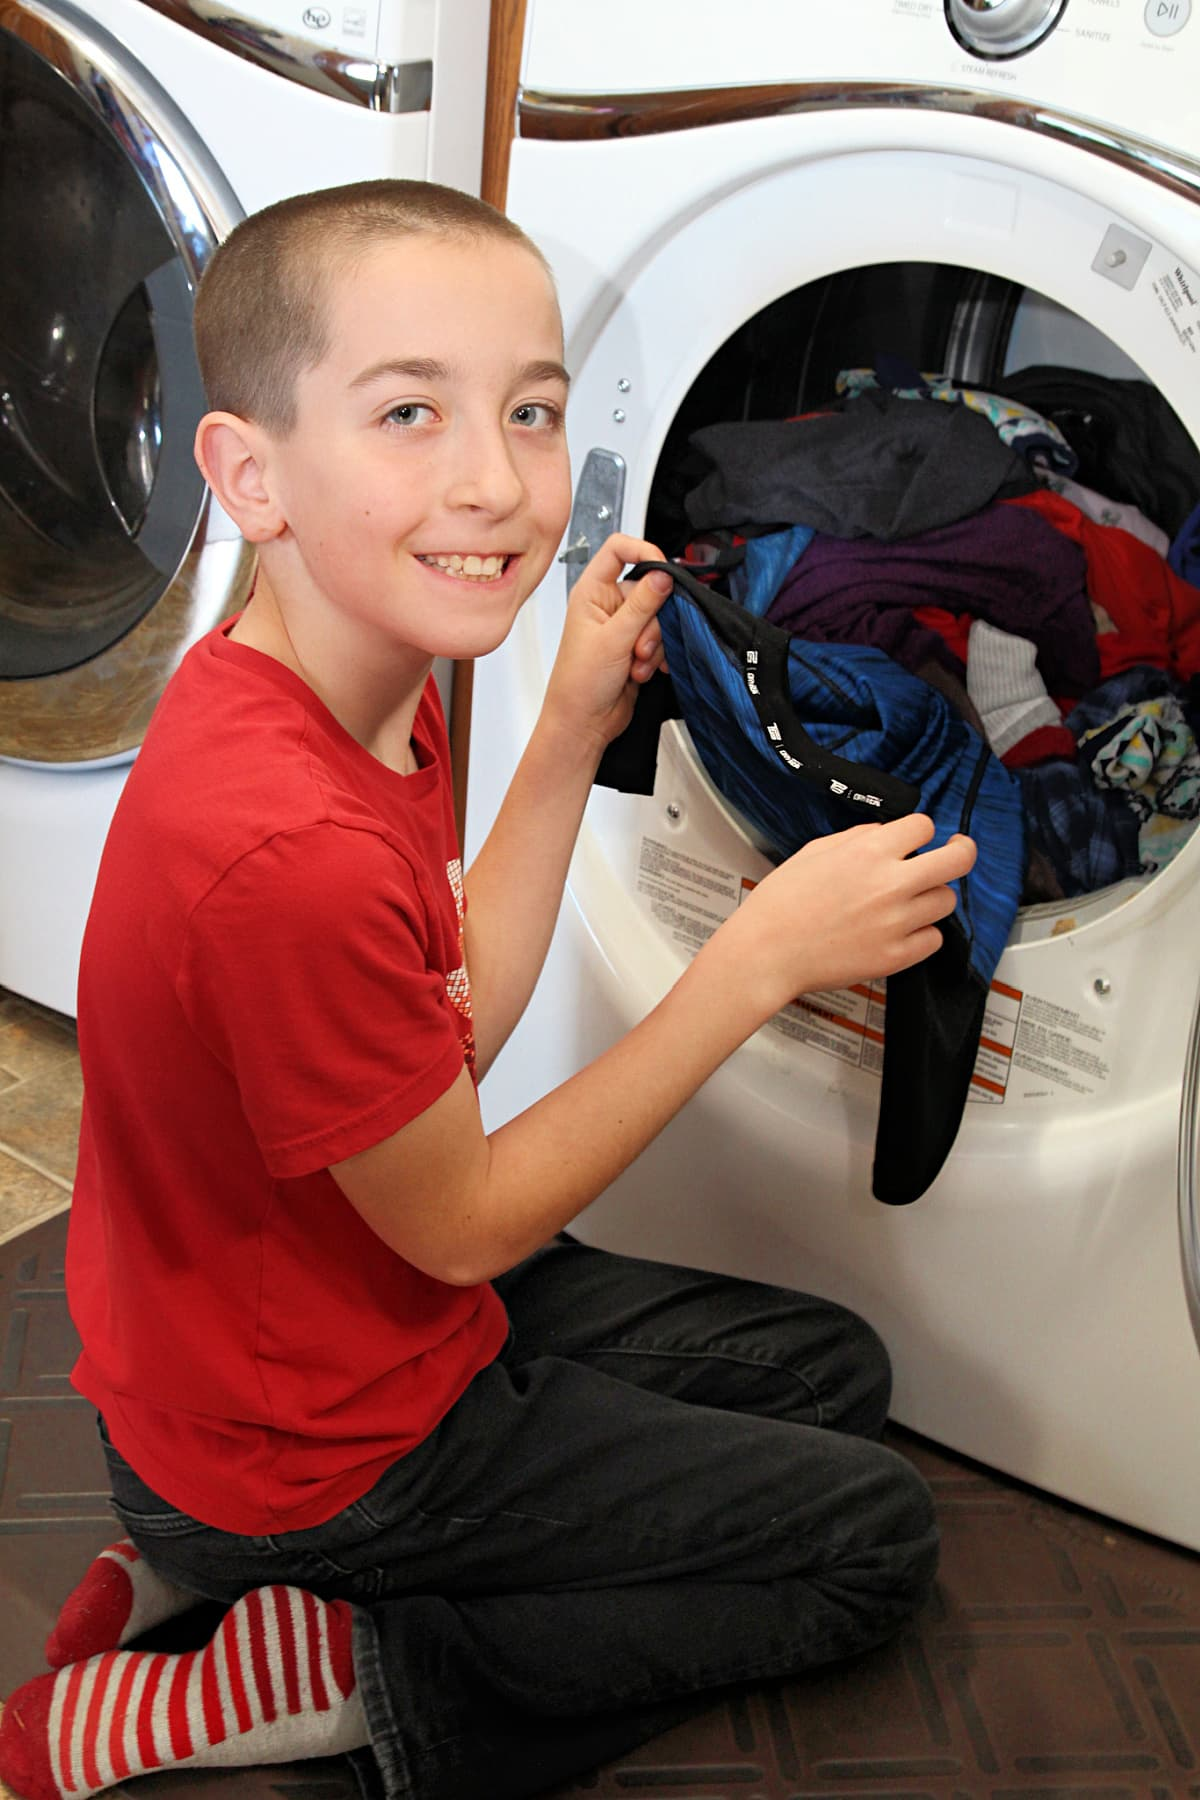 boy folding clothes - Family Laundry Tips - Everyday Chores Made Easy With Whirlpool Corporation's Improving Life at Home Hub